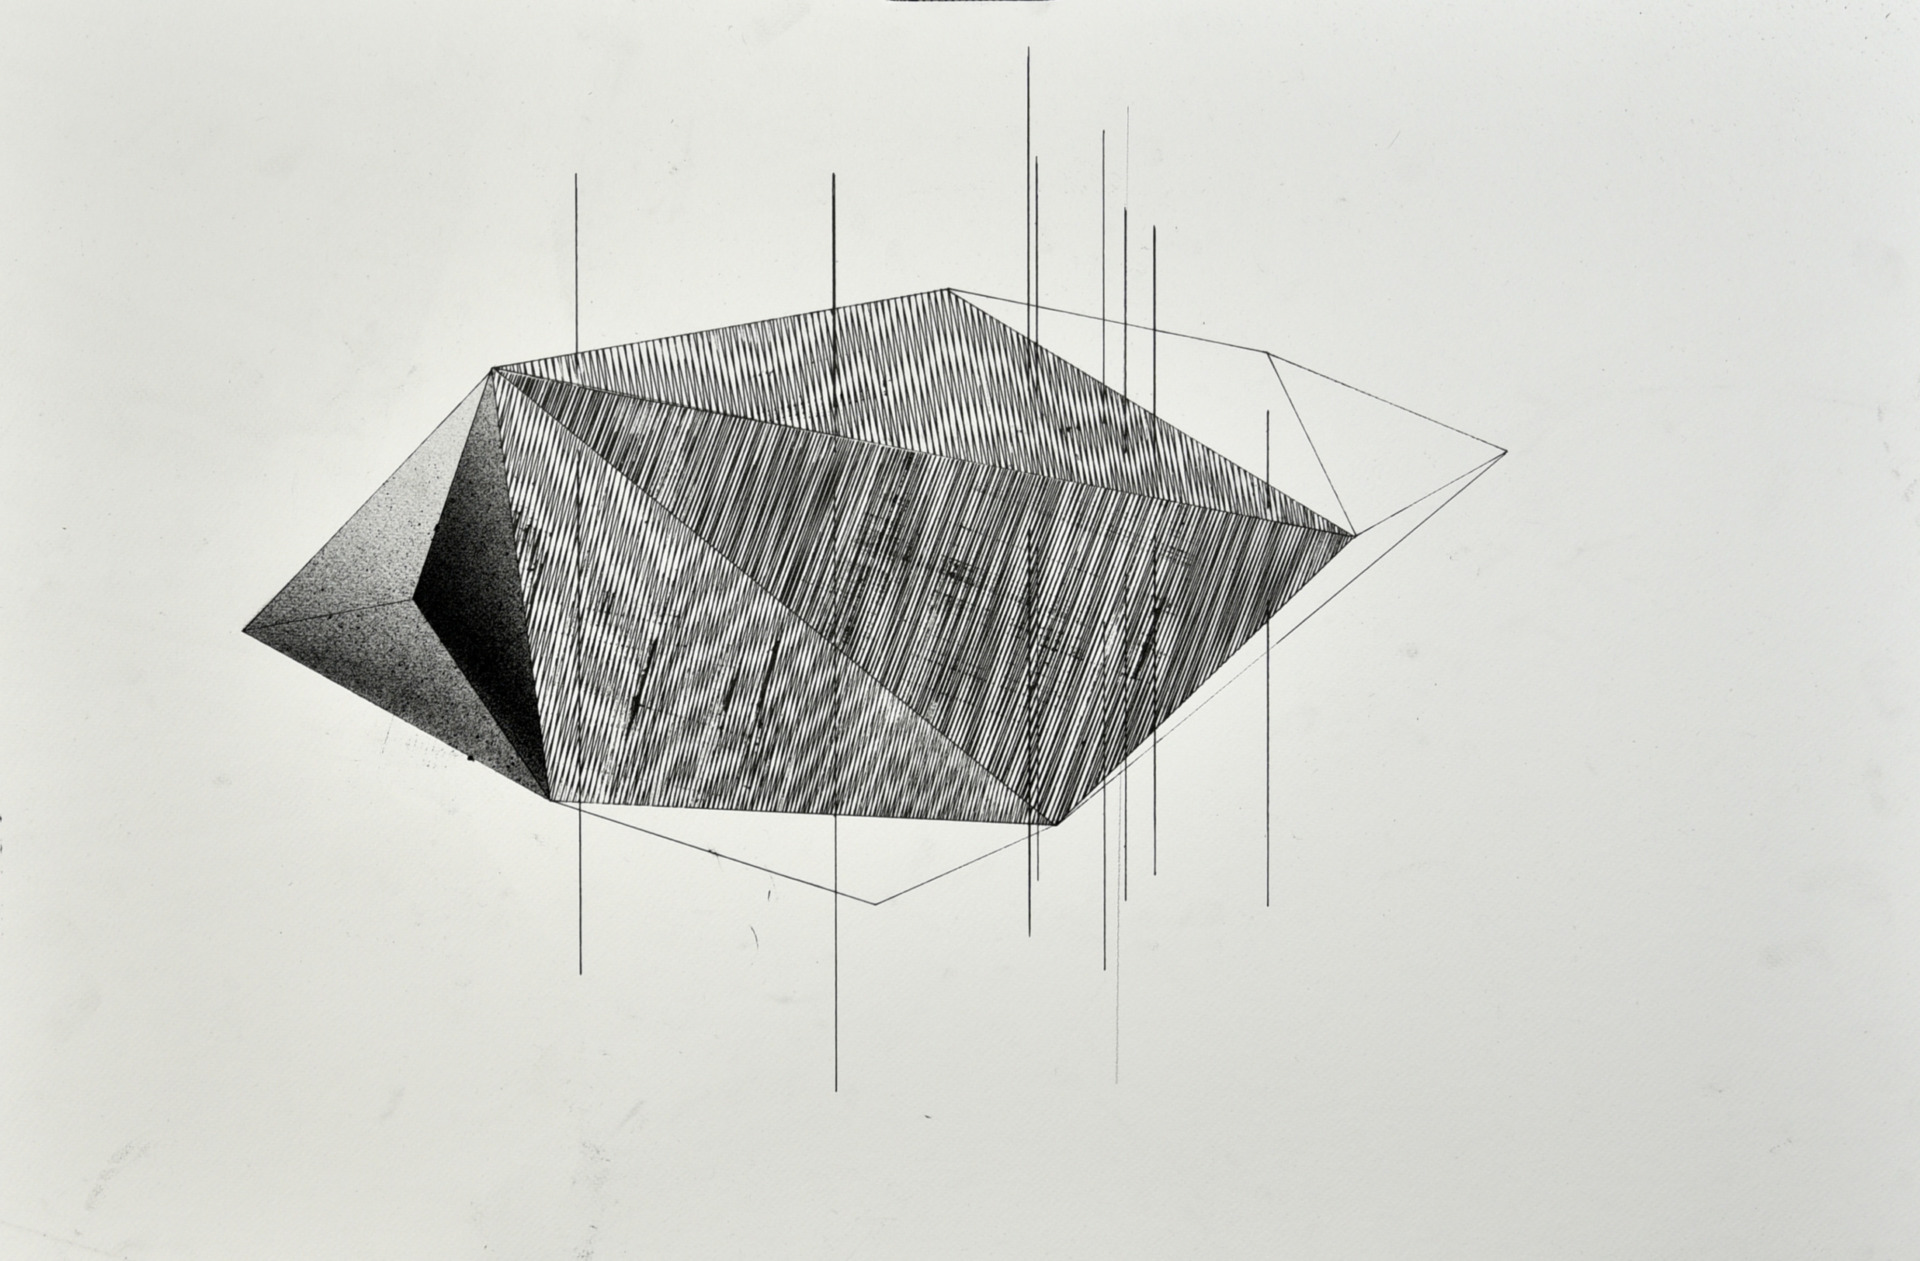 Contemporary art from Gyula Sági | Op.201220. 10